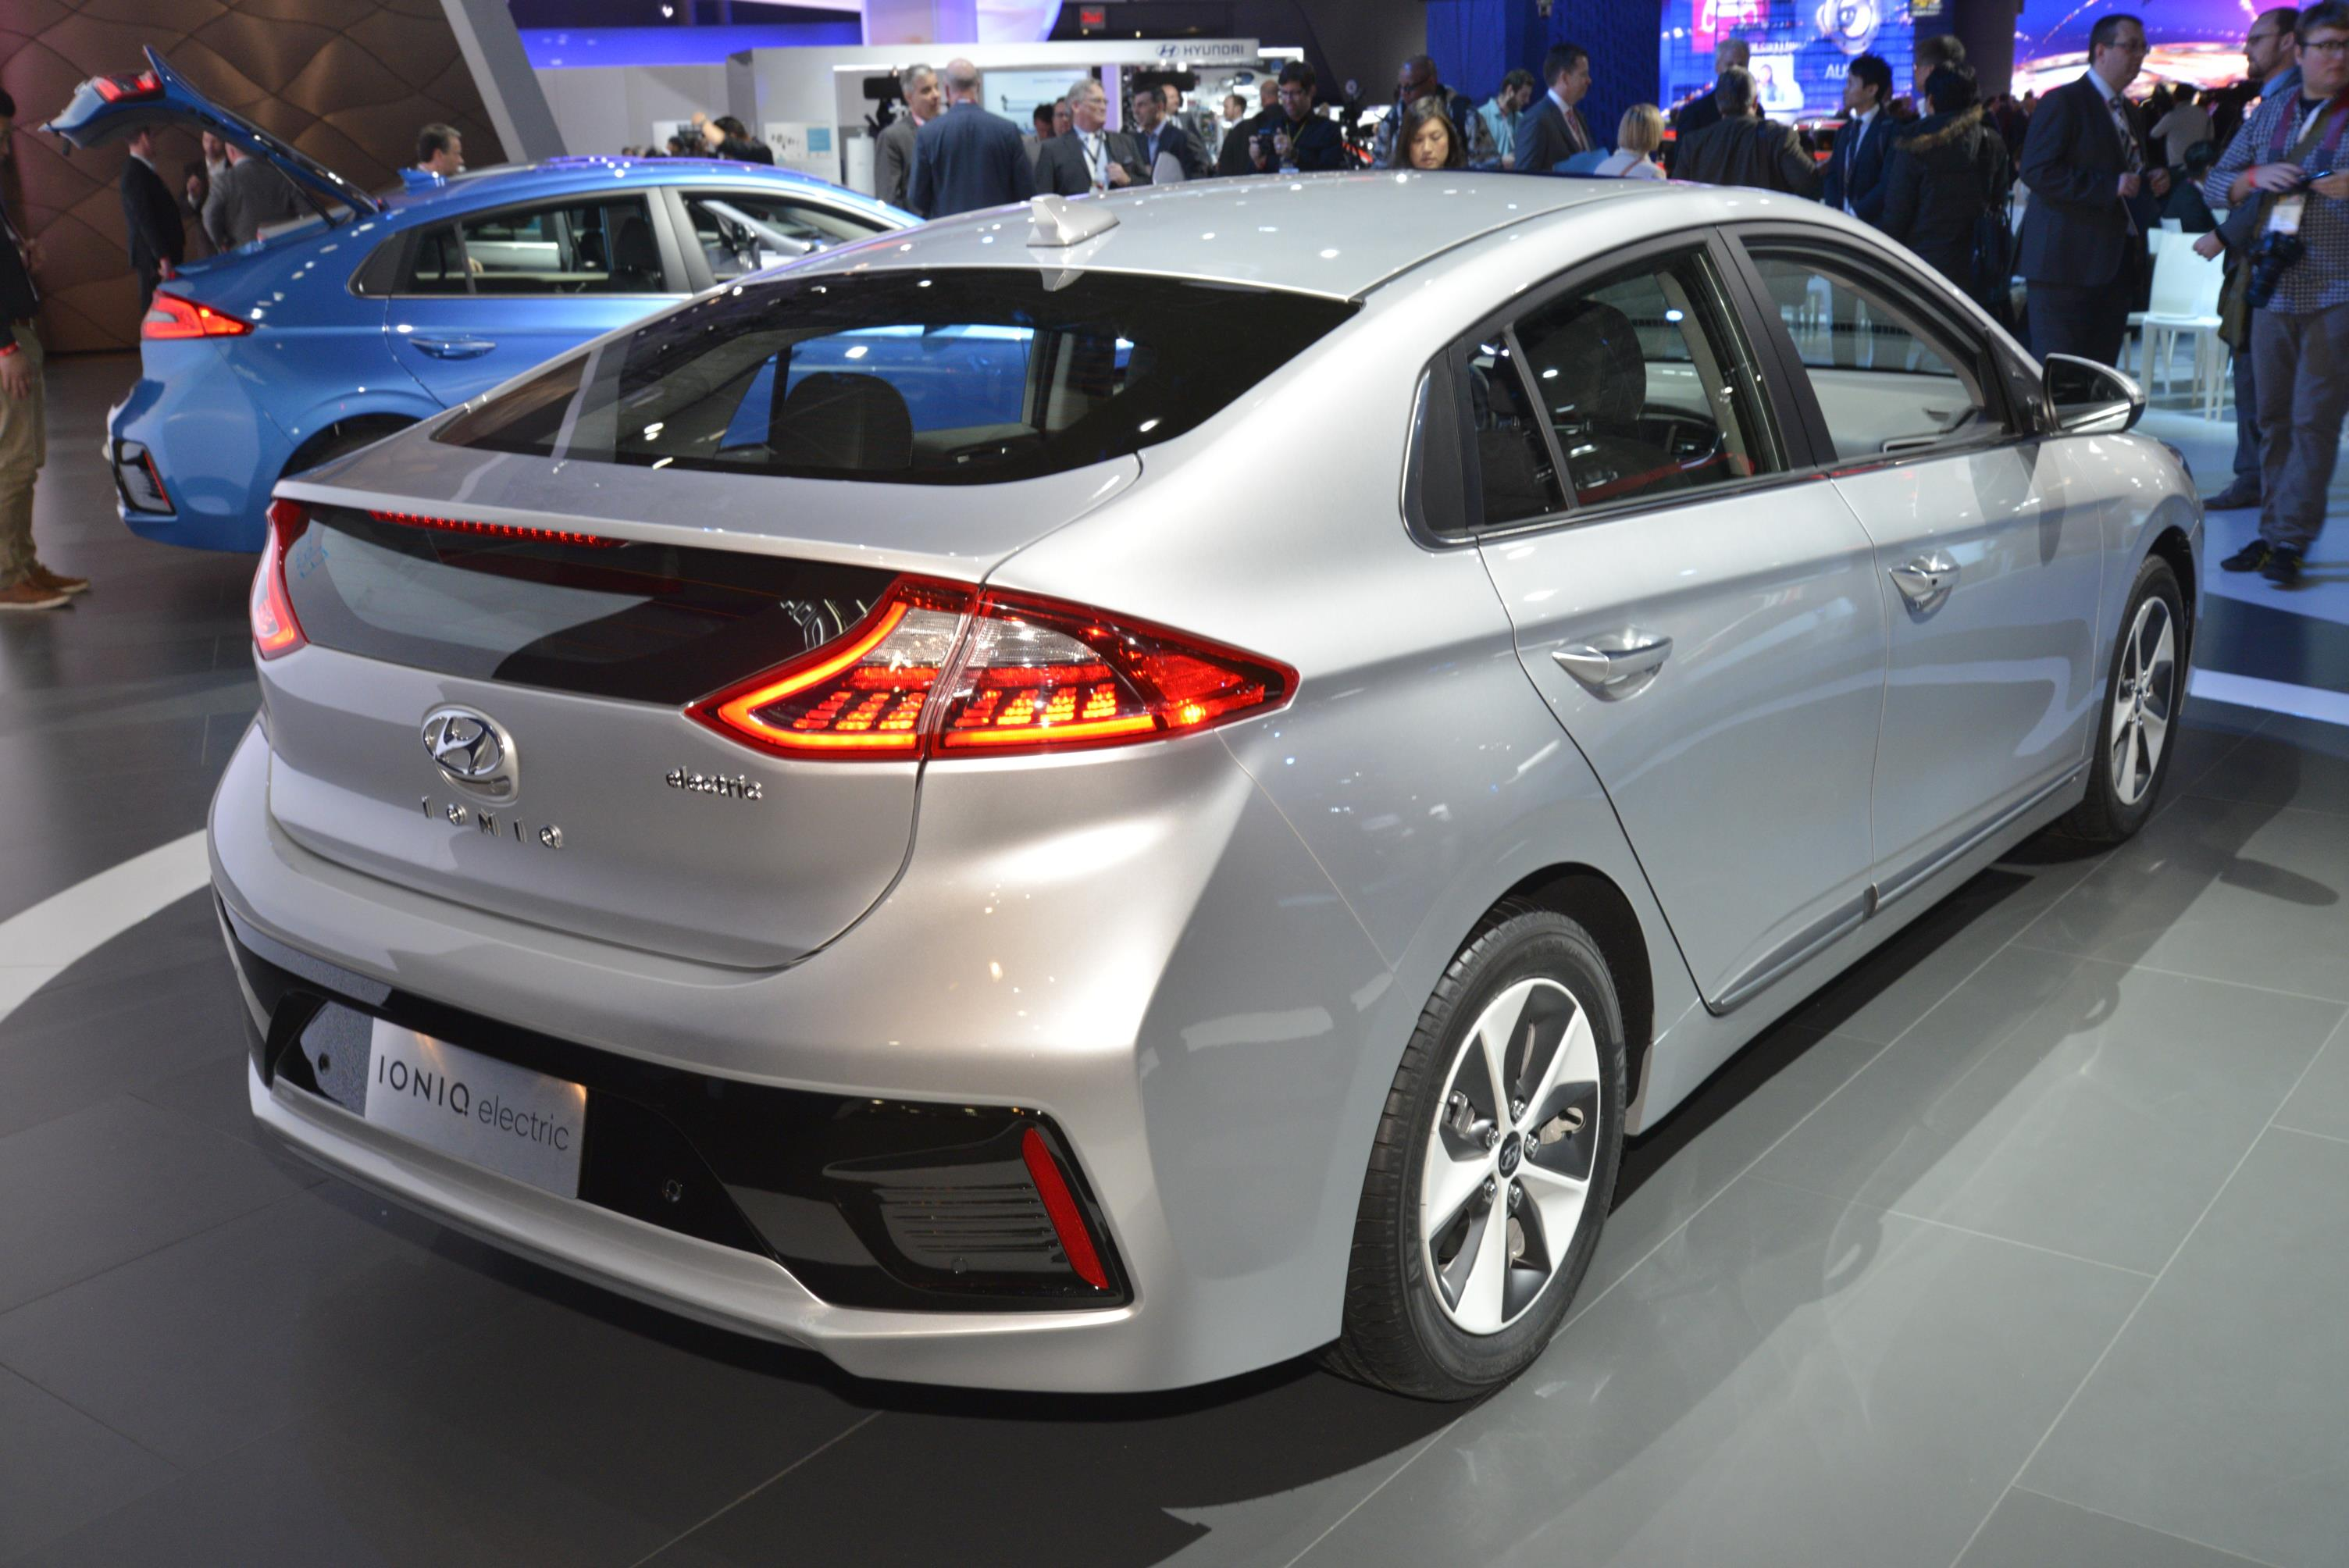 Elantra 2017 Silver >> 2017 Hyundai Ioniq Shines in New York, Trumps the 2017 Toyota Prius Prime - autoevolution